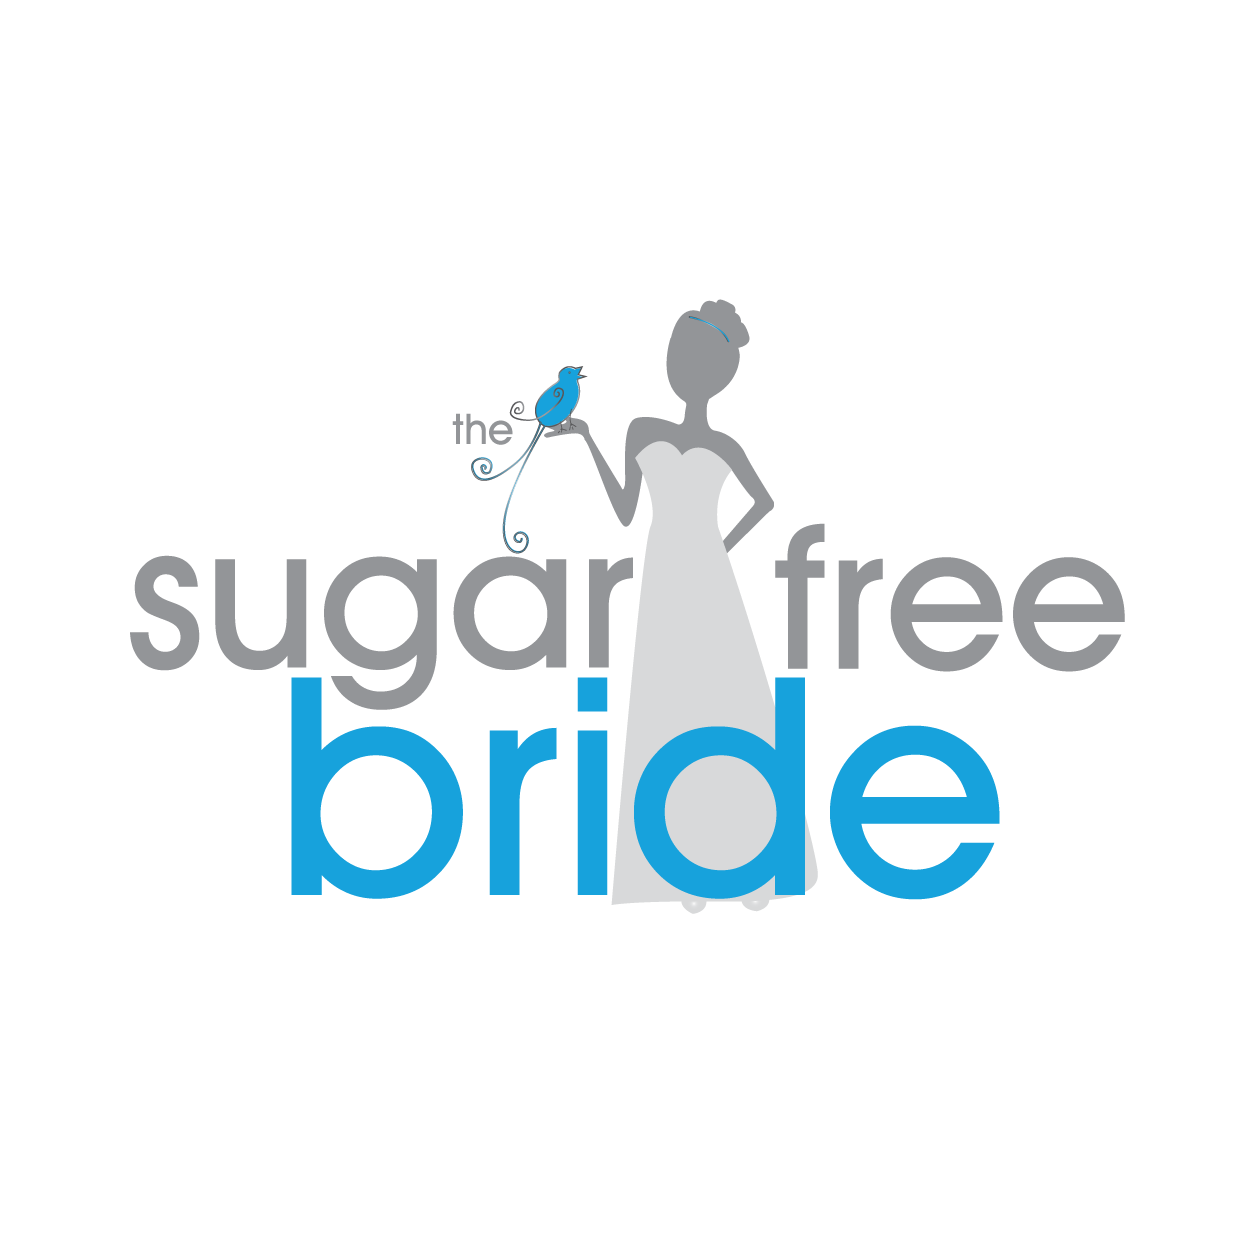 the sugar free bride seeks modern whimsical logo